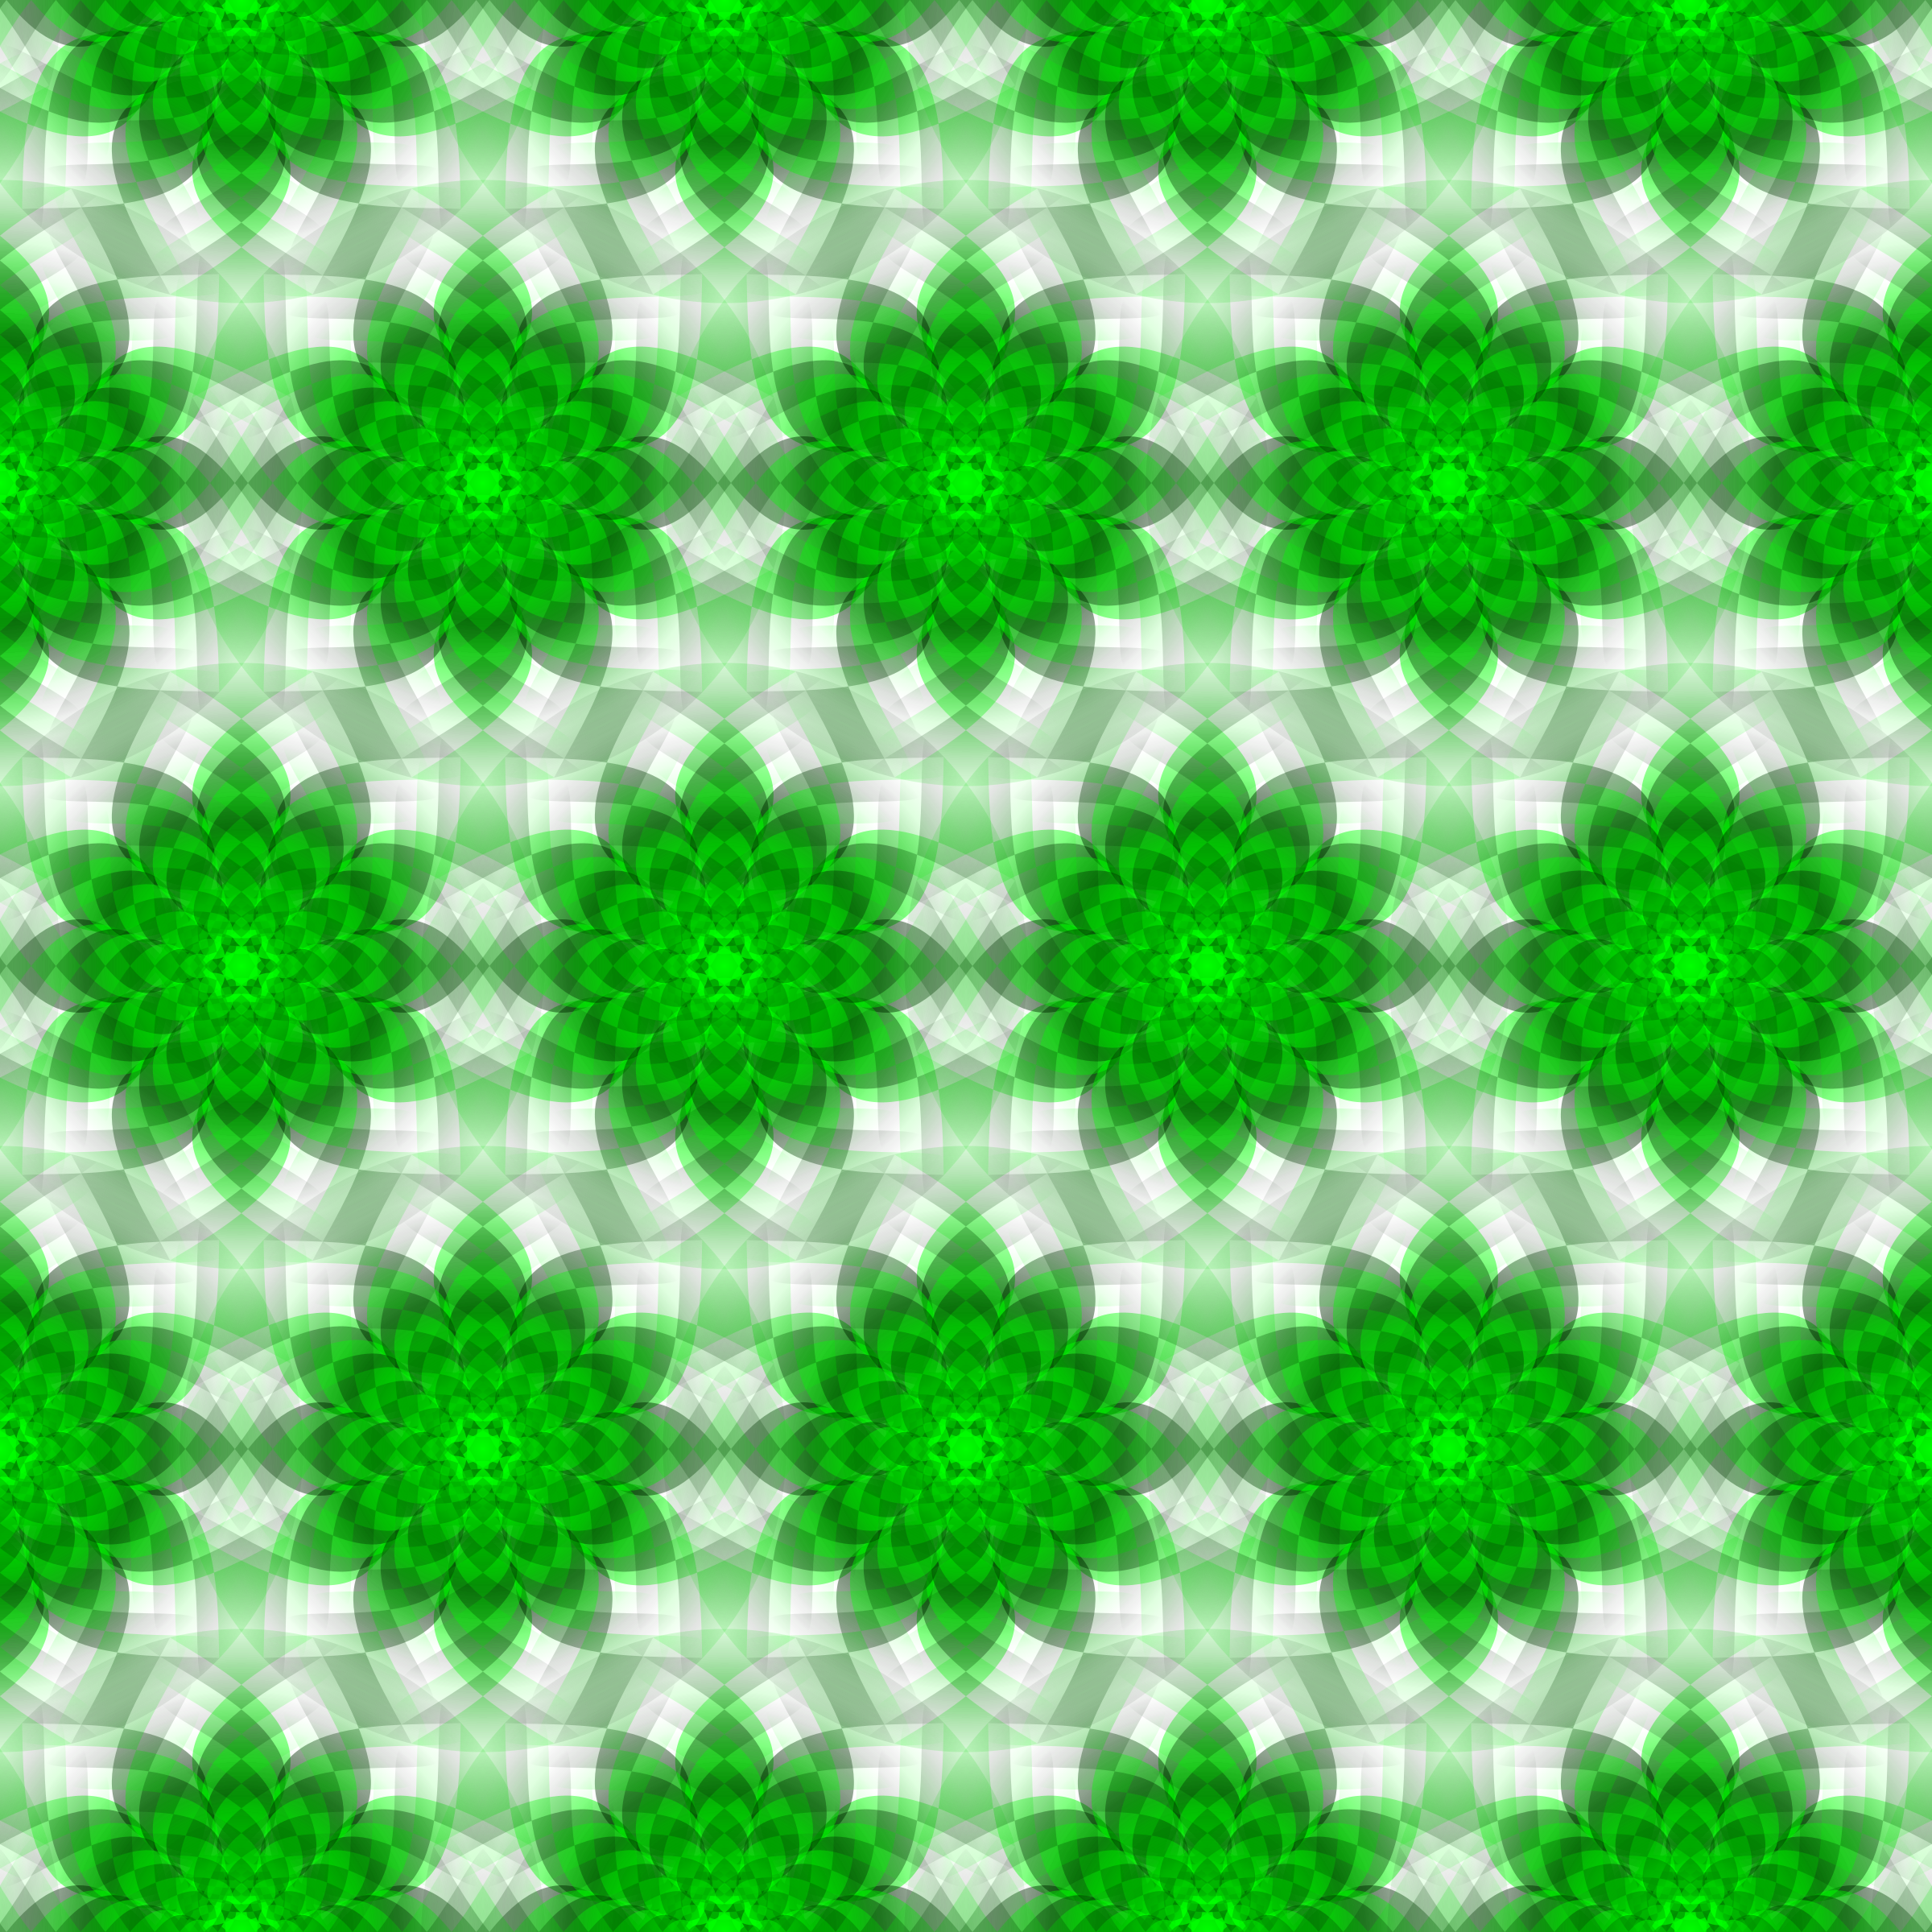 Background pattern 60 by Firkin